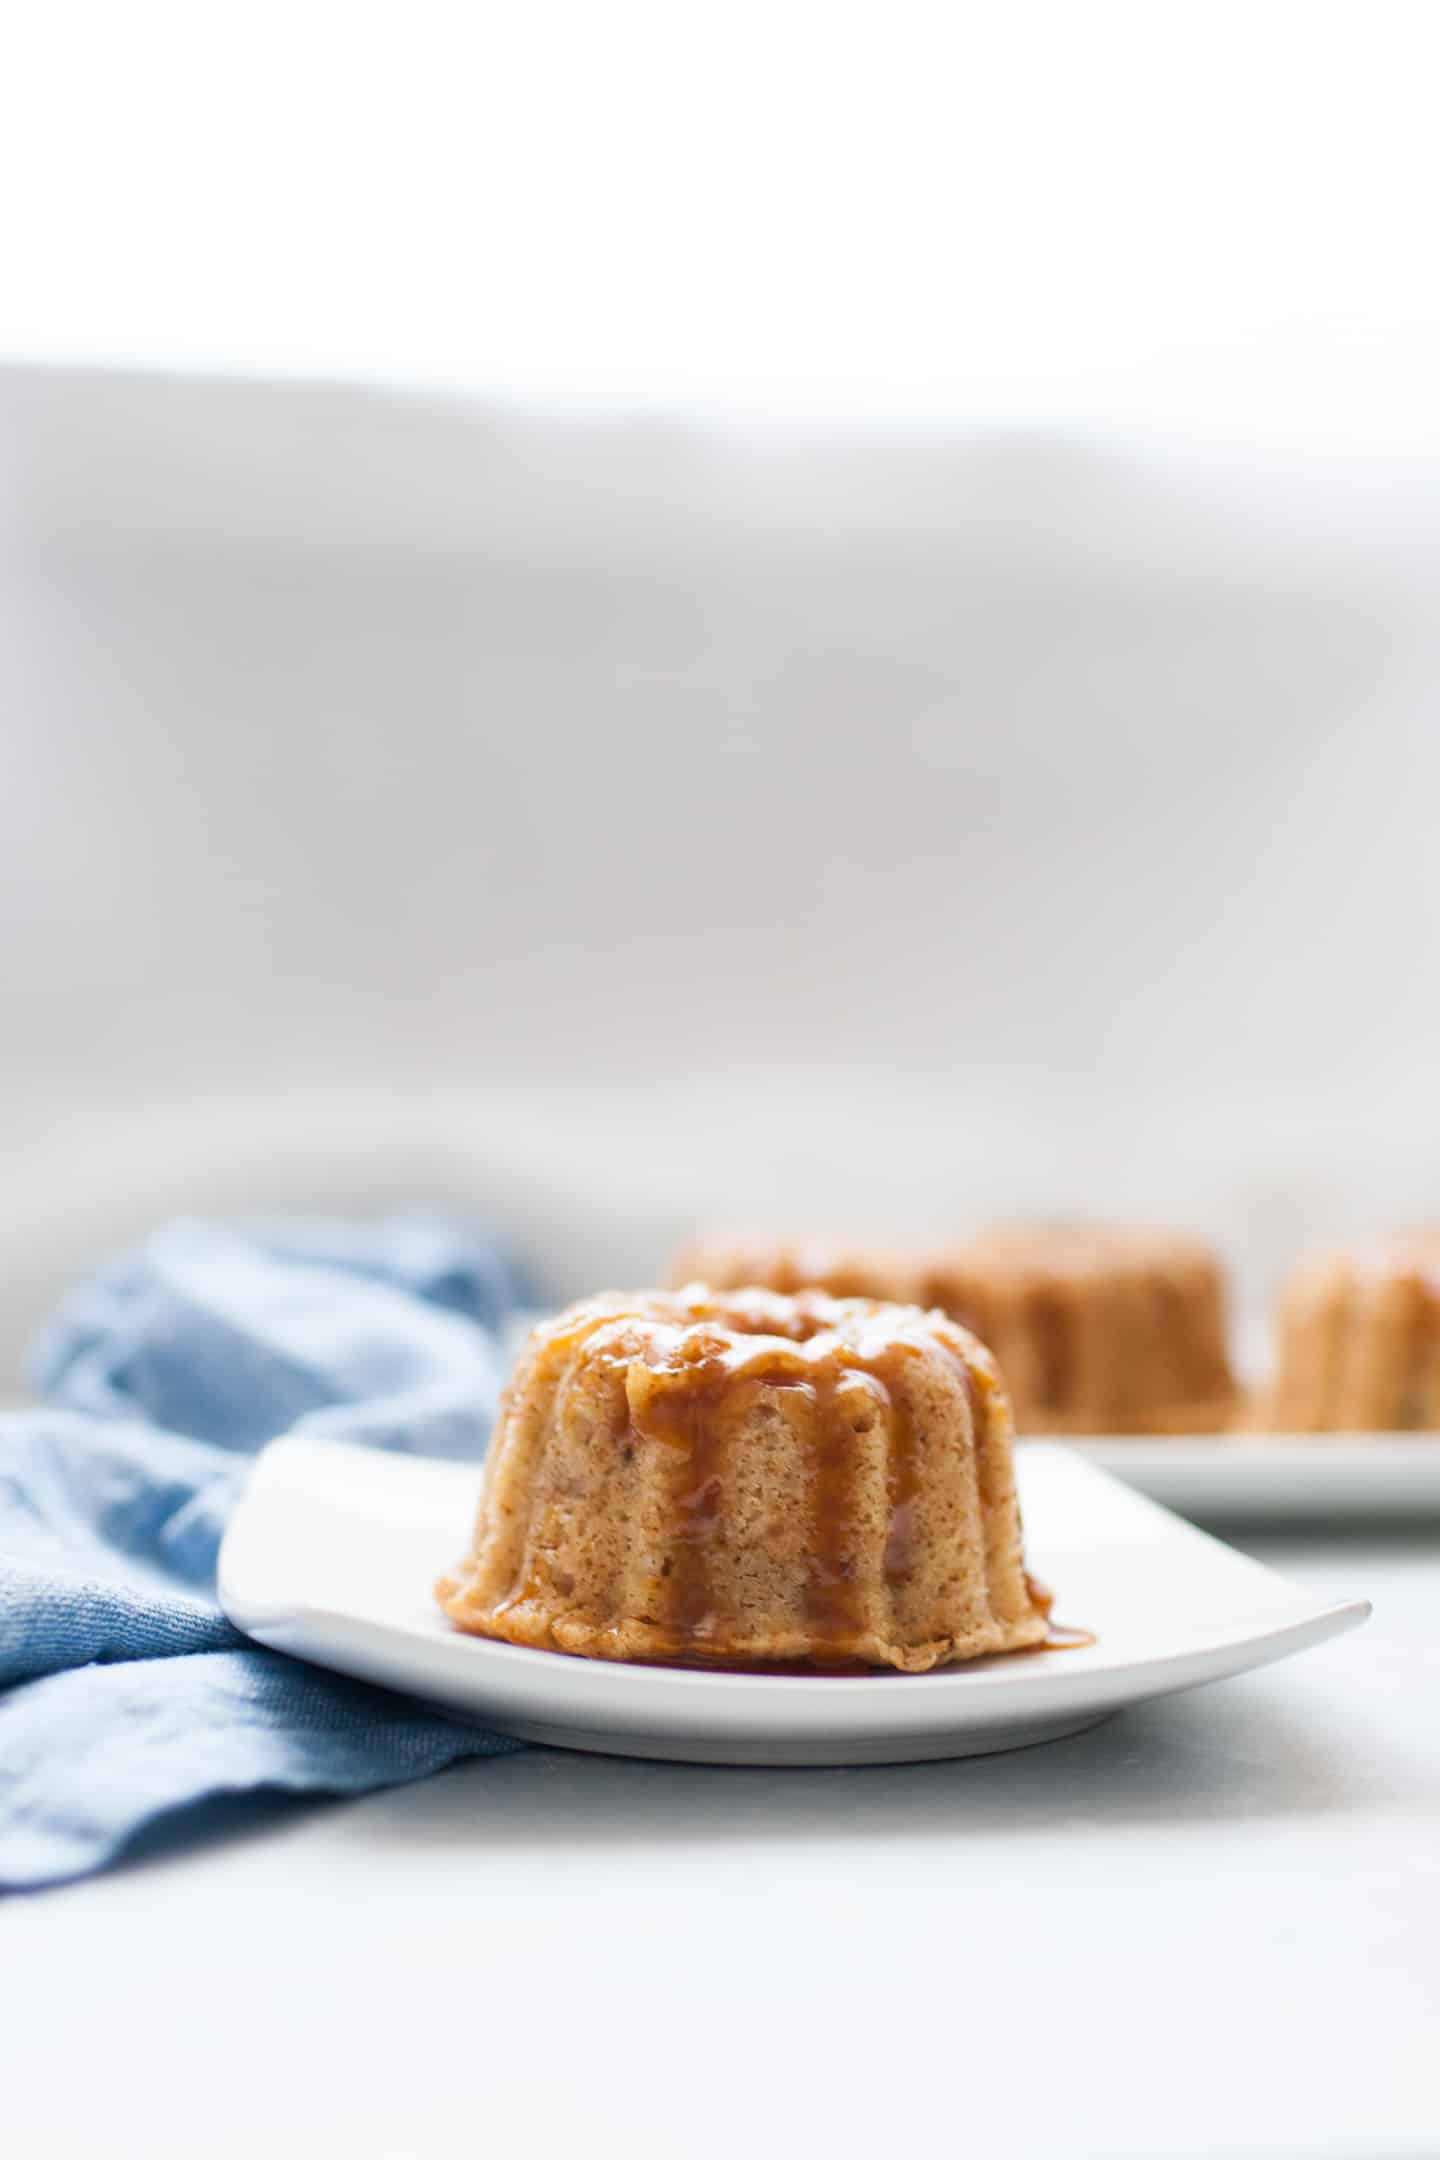 Mini bundt shaped cakes sitting on a white serving platter with small jar of caramel in the background.